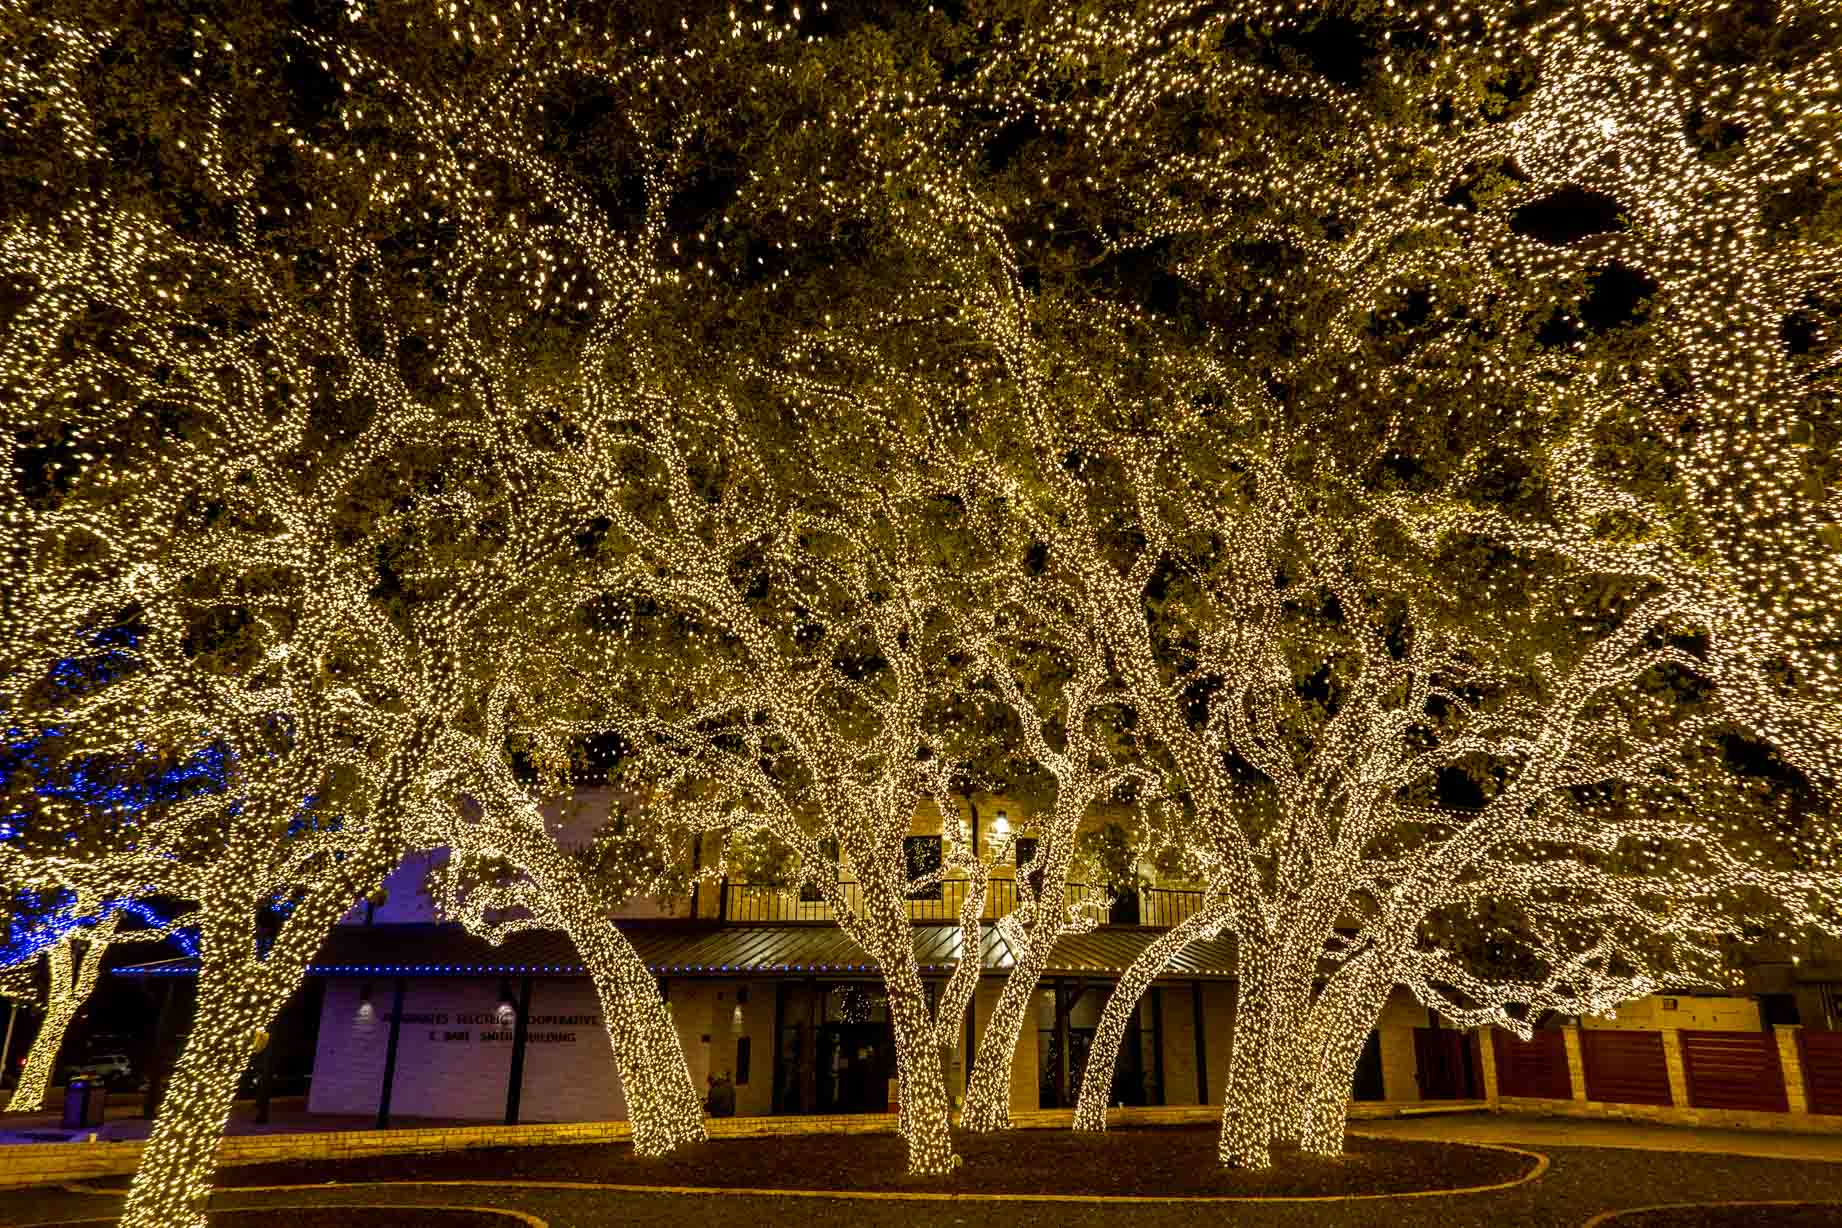 Trees covered in white Christmas lights that fill the frame